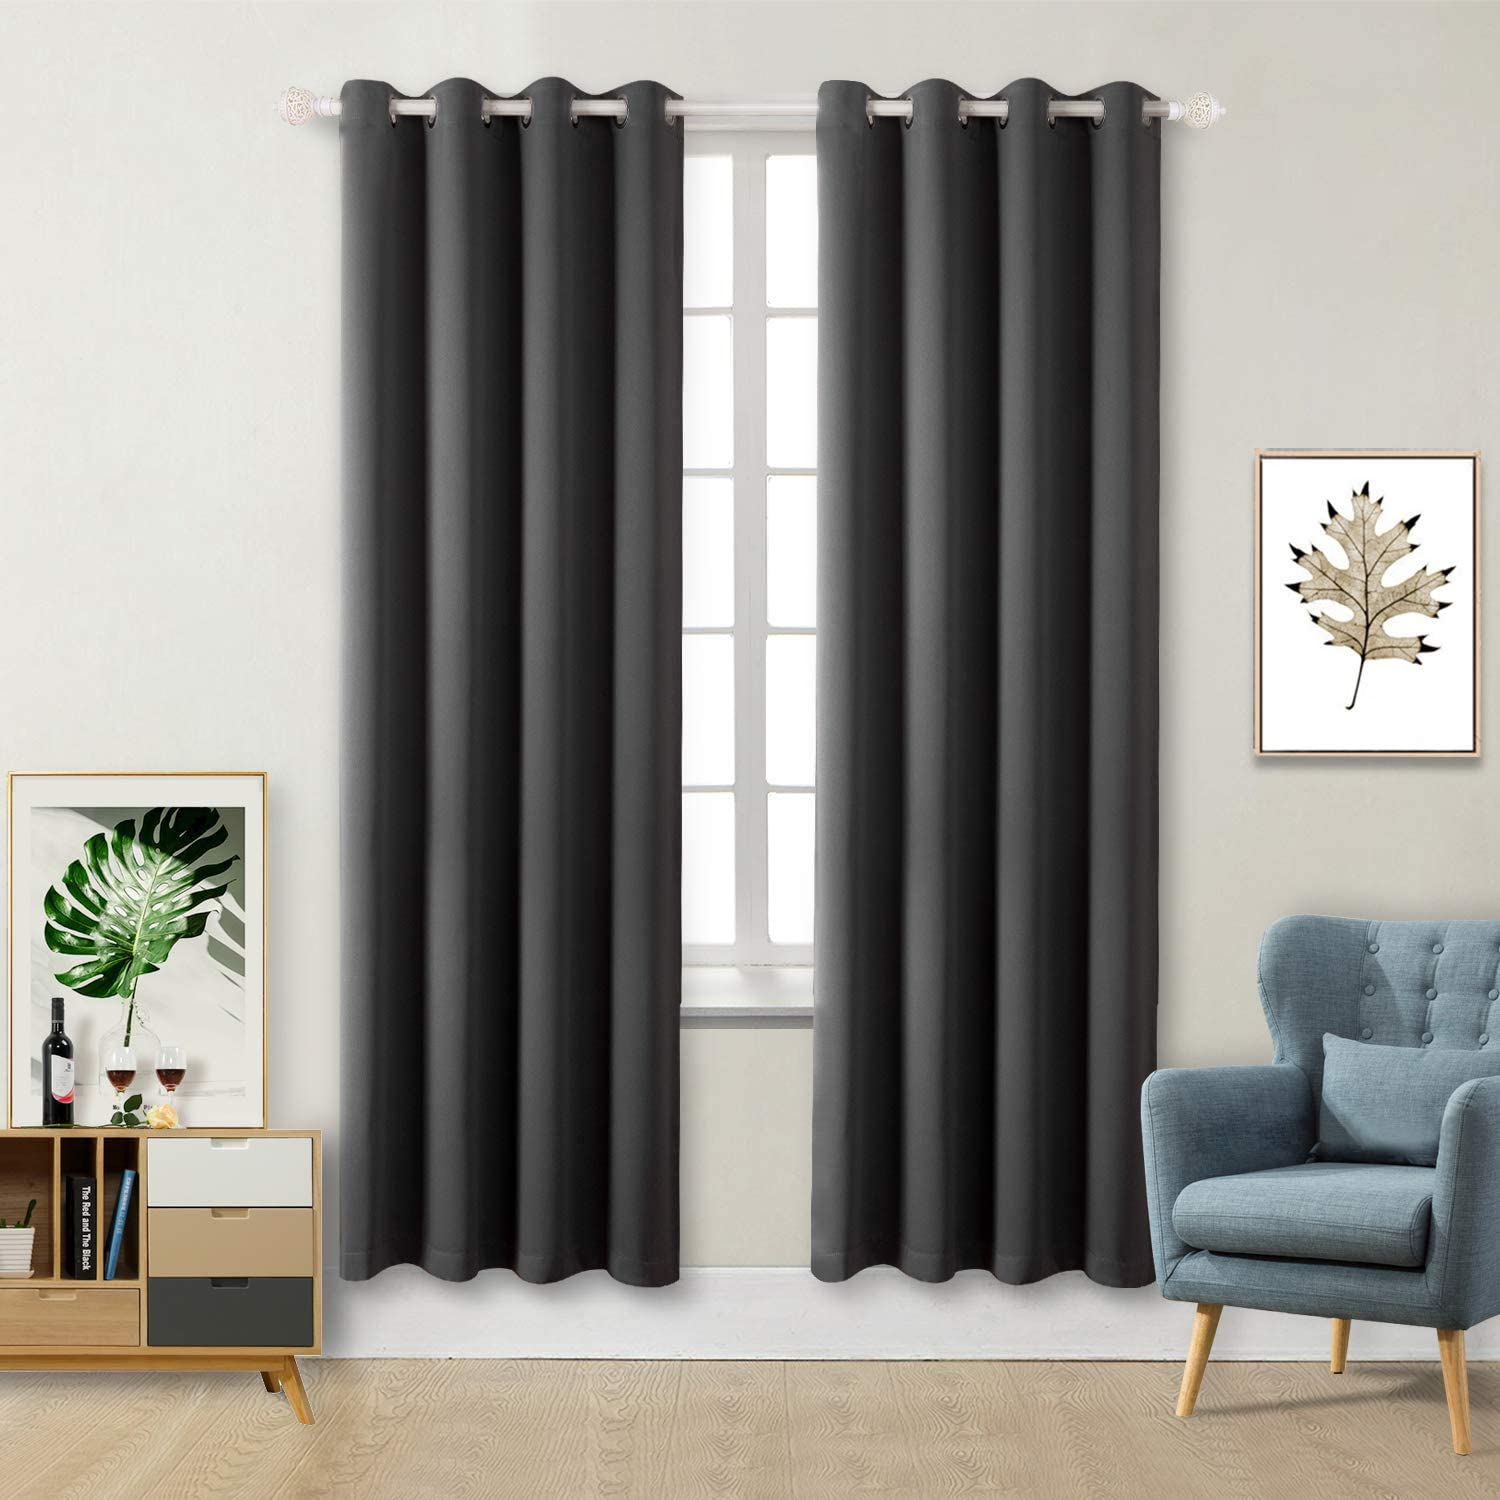 BGment Blackout Curtains - Grommet Thermal Insulated Room Darkening Bedroom and Living Room Curtain, Set of 2 Panels (52 x 84 Inch, Dark Grey)